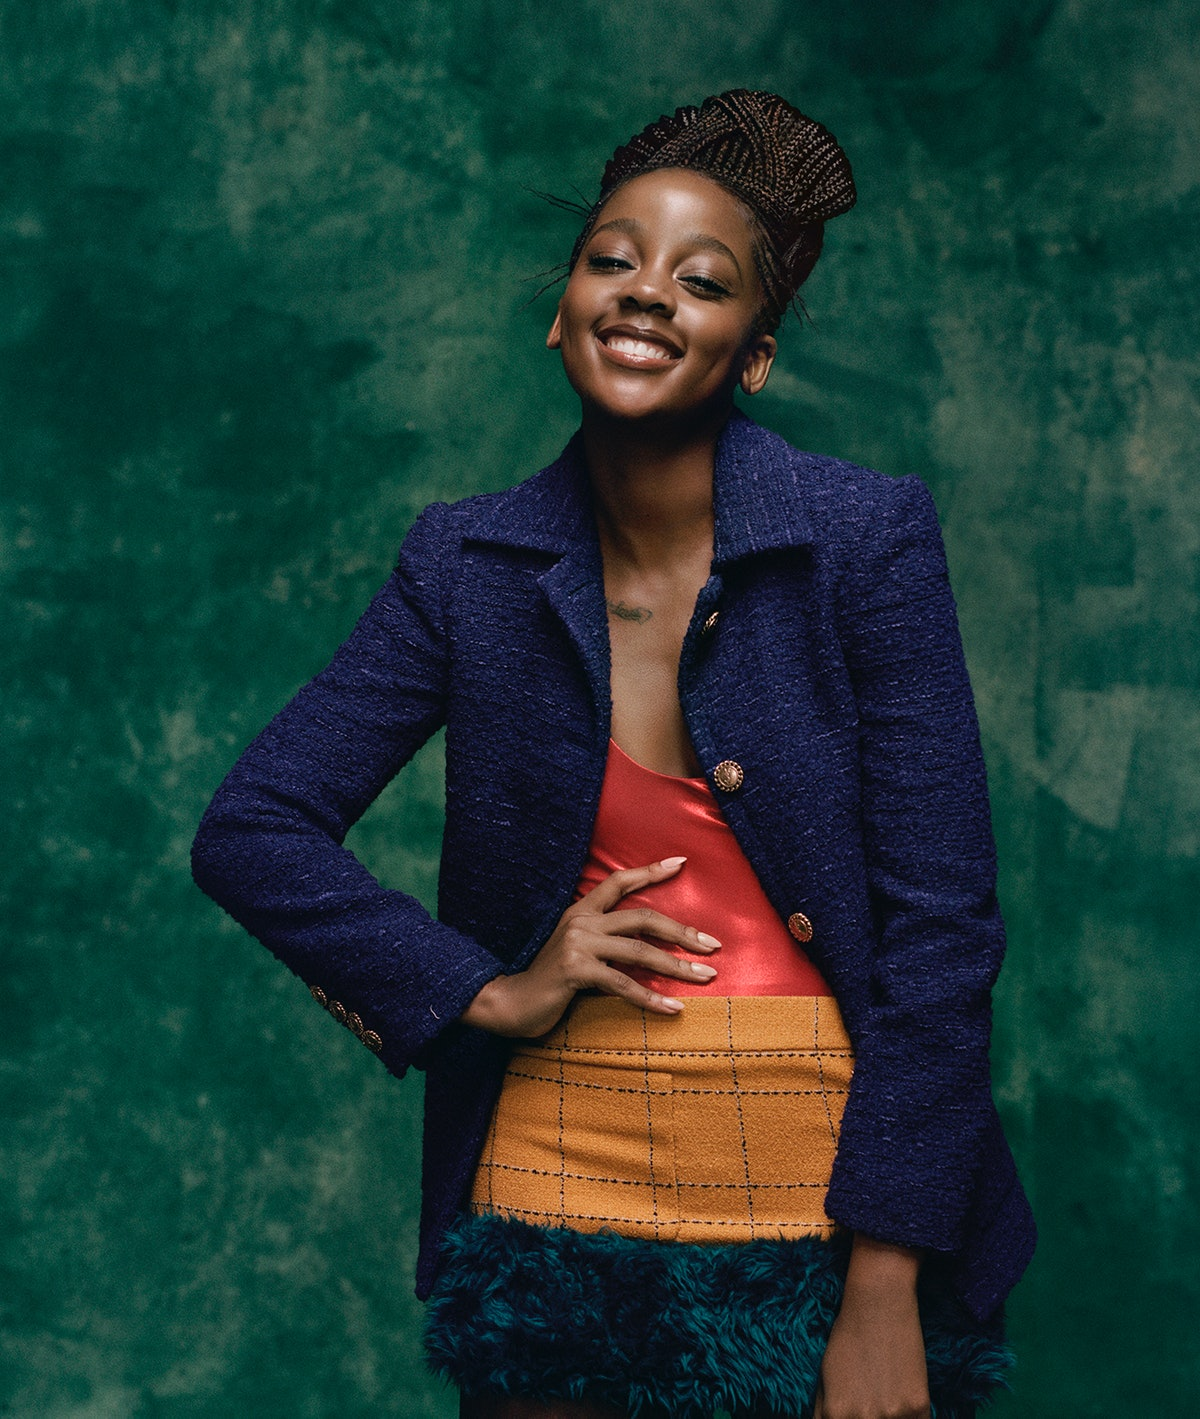 Thuso Mbedu wears a Saint Laurent by Anthony Vaccarello jacket, bodysuit, and miniskirt.